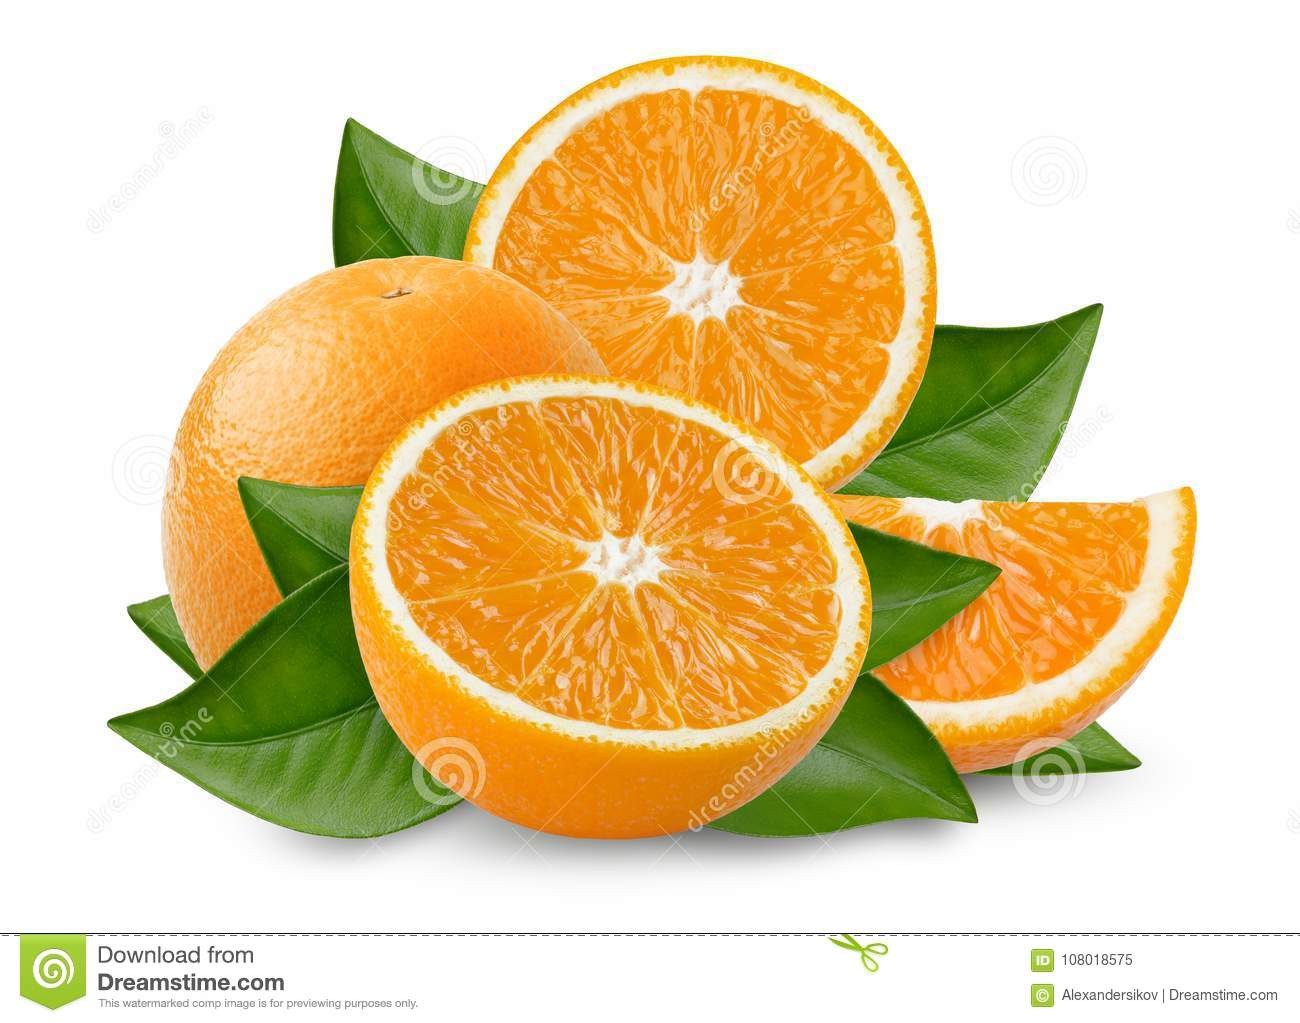 How to DePith Oranges